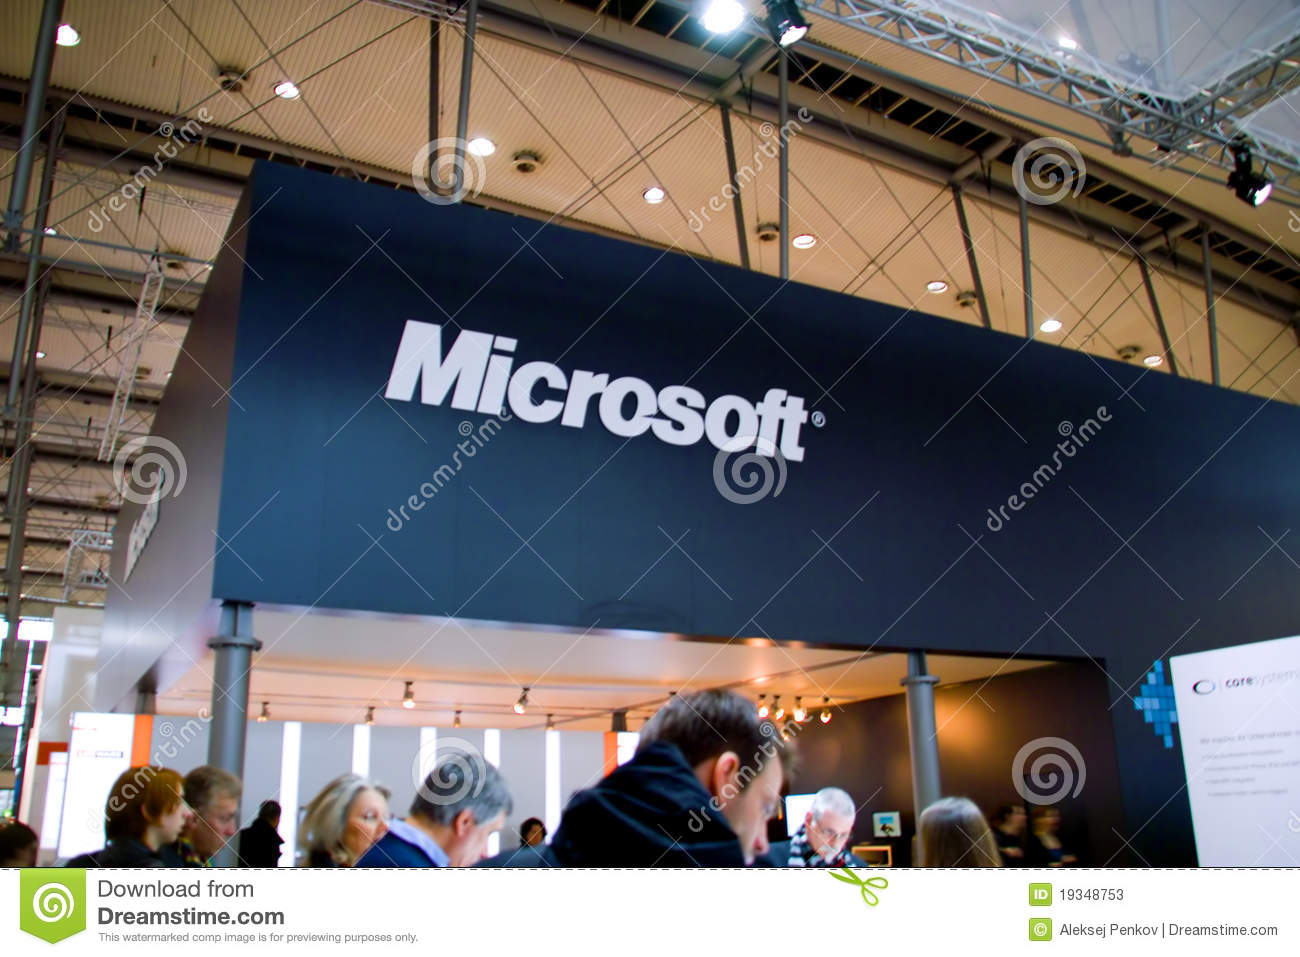 Standplatz des Microsofts in der CEBIT-Computerausstellung